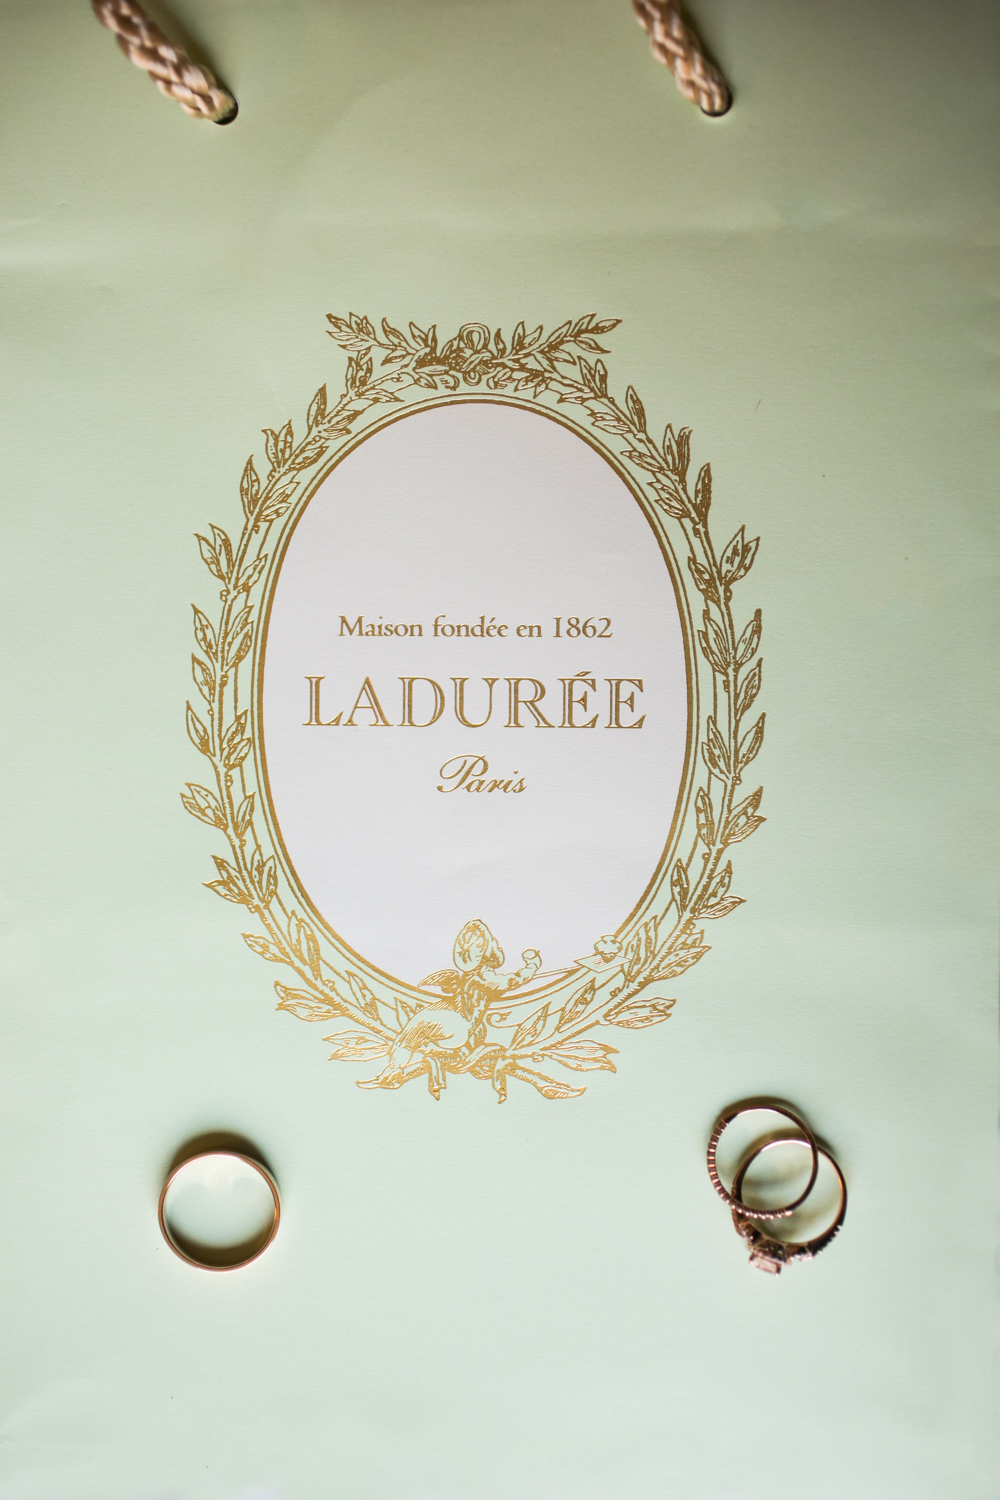 Laduree Elopement photos